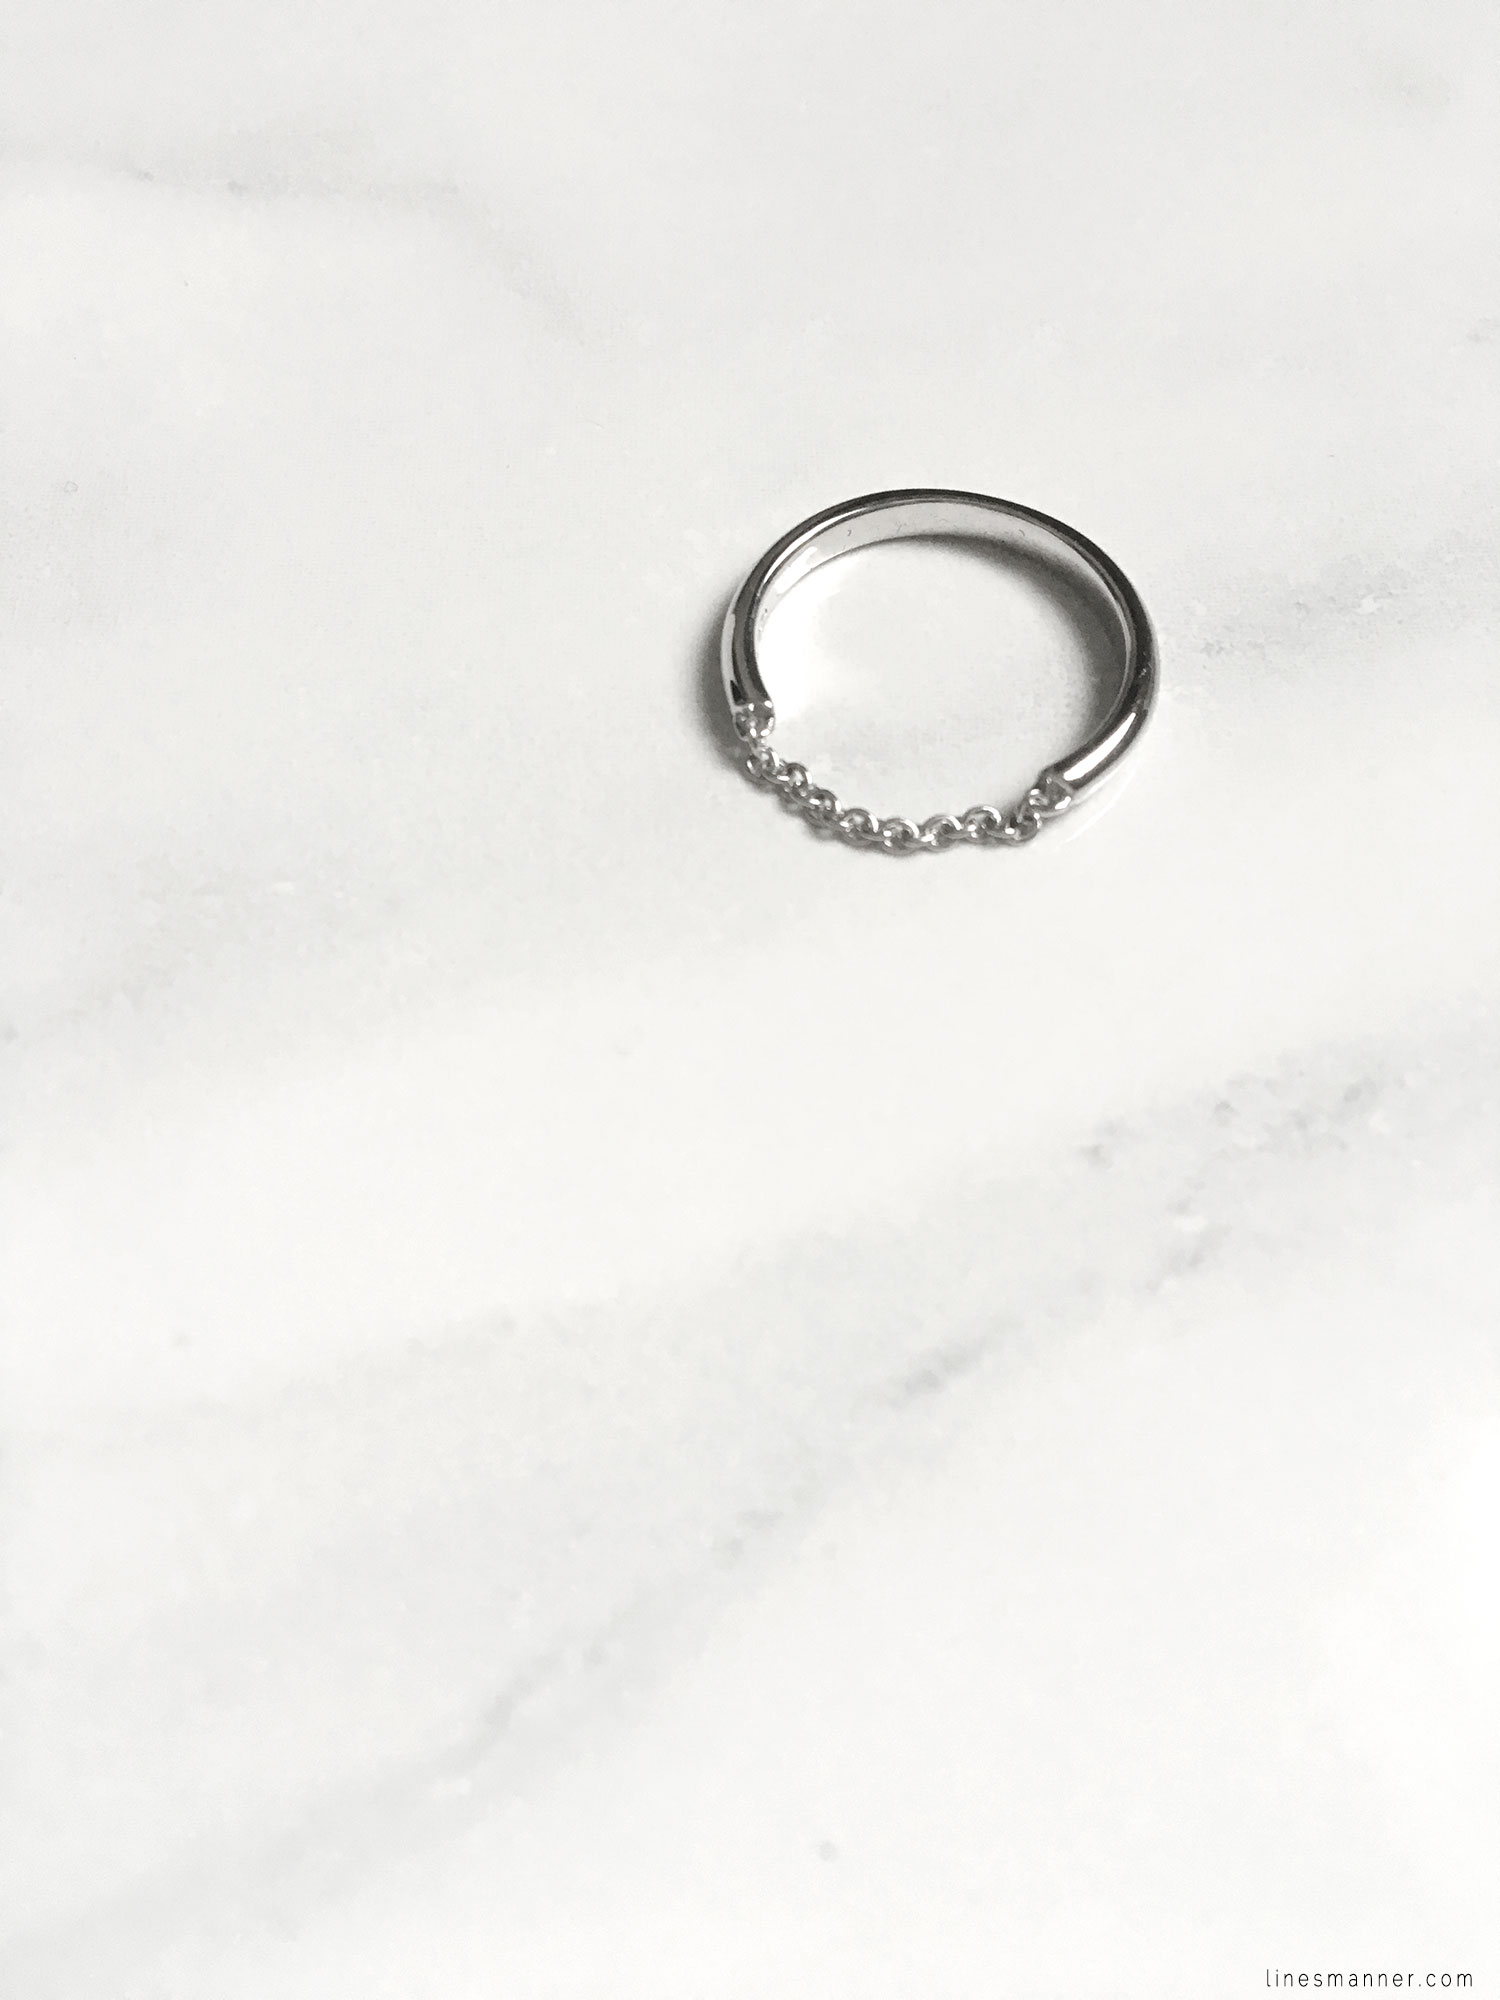 Lines-Manner-Details-Mejuri-Marble-Essentials-Minimal-Jewellery-Silver-Ring-Delicate-Monochrome-Simplicity-3